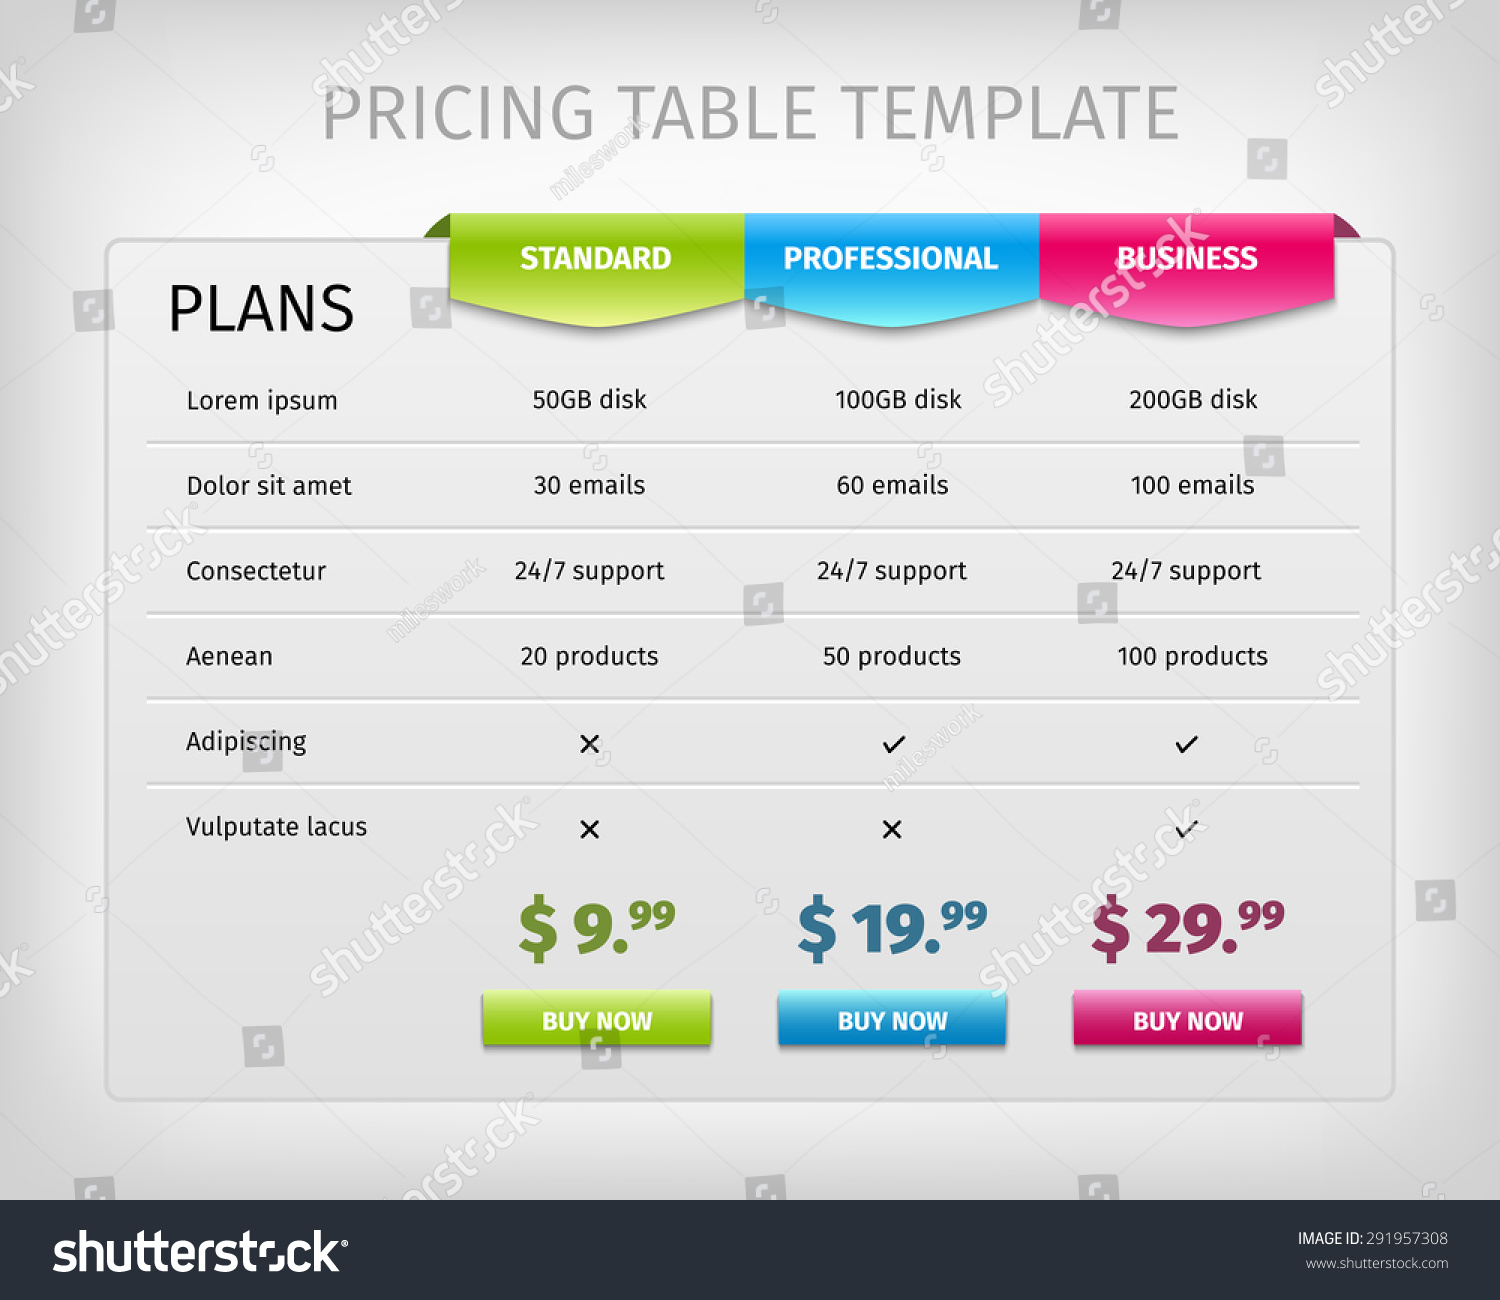 Comparison Chart Template Word Images